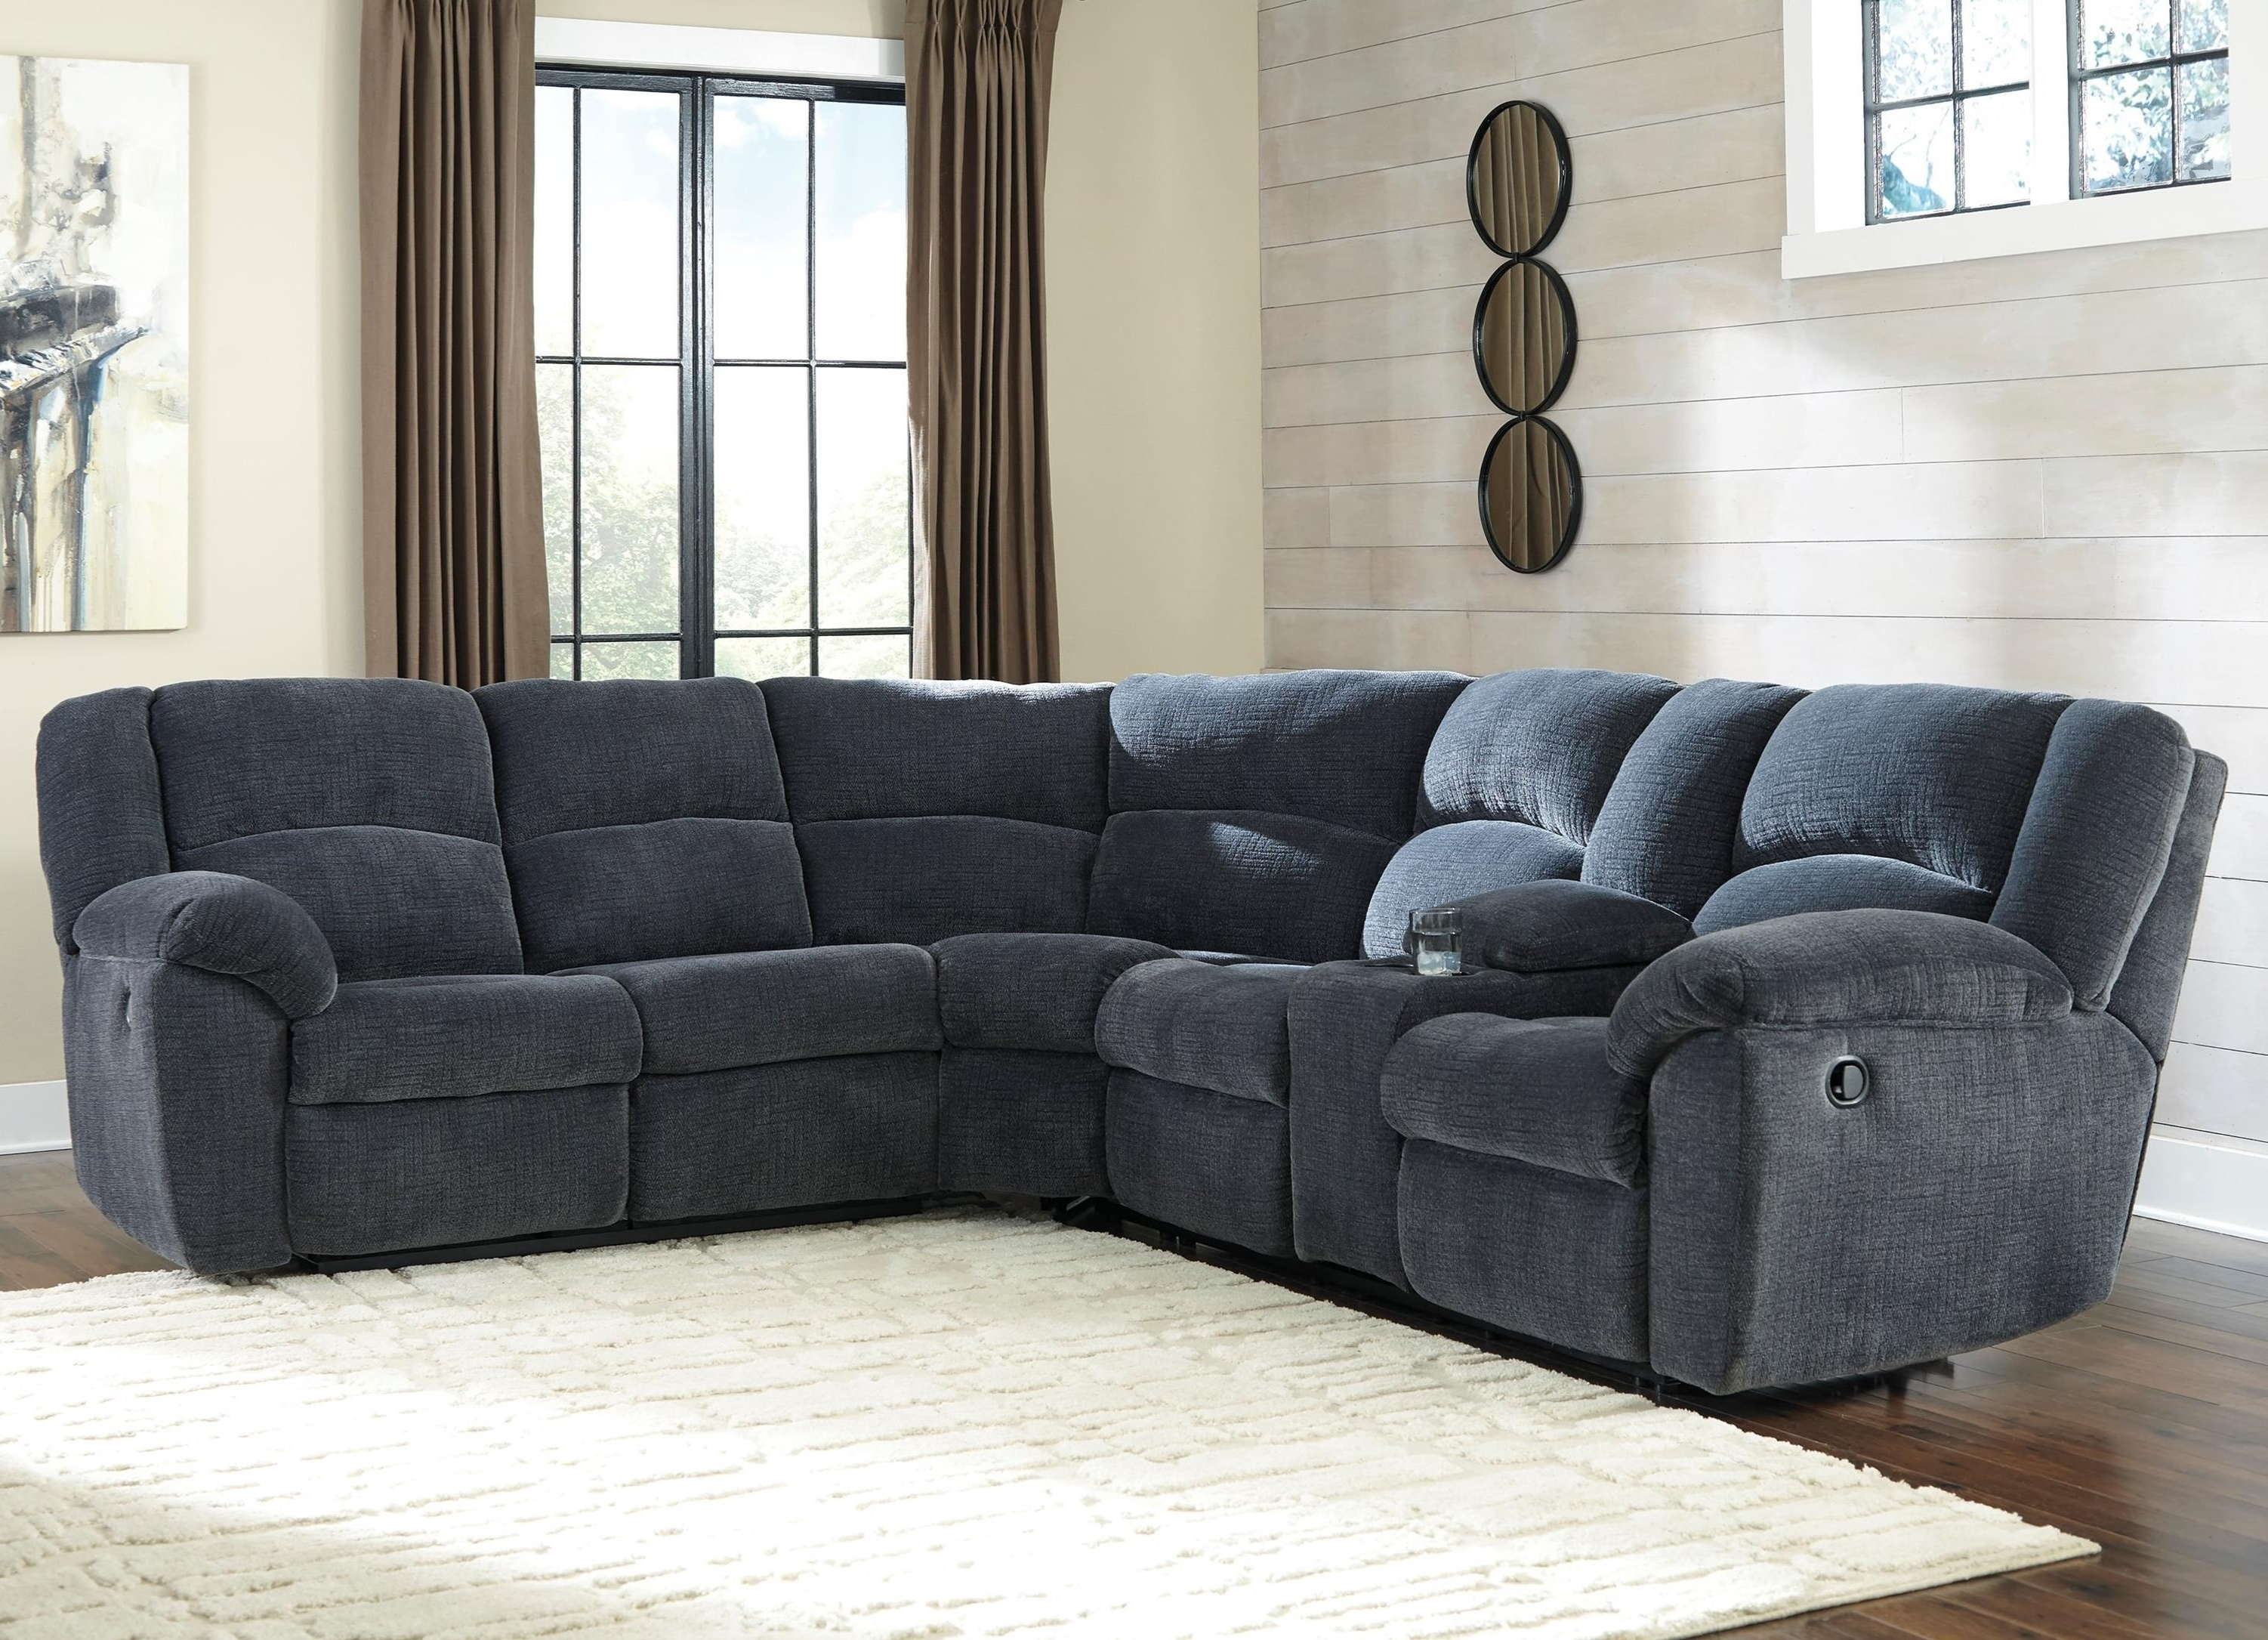 Reclining Sectional Sofas With Fashionable Benchcraft Timpson Reclining Sectional With Storage Console (View 14 of 20)